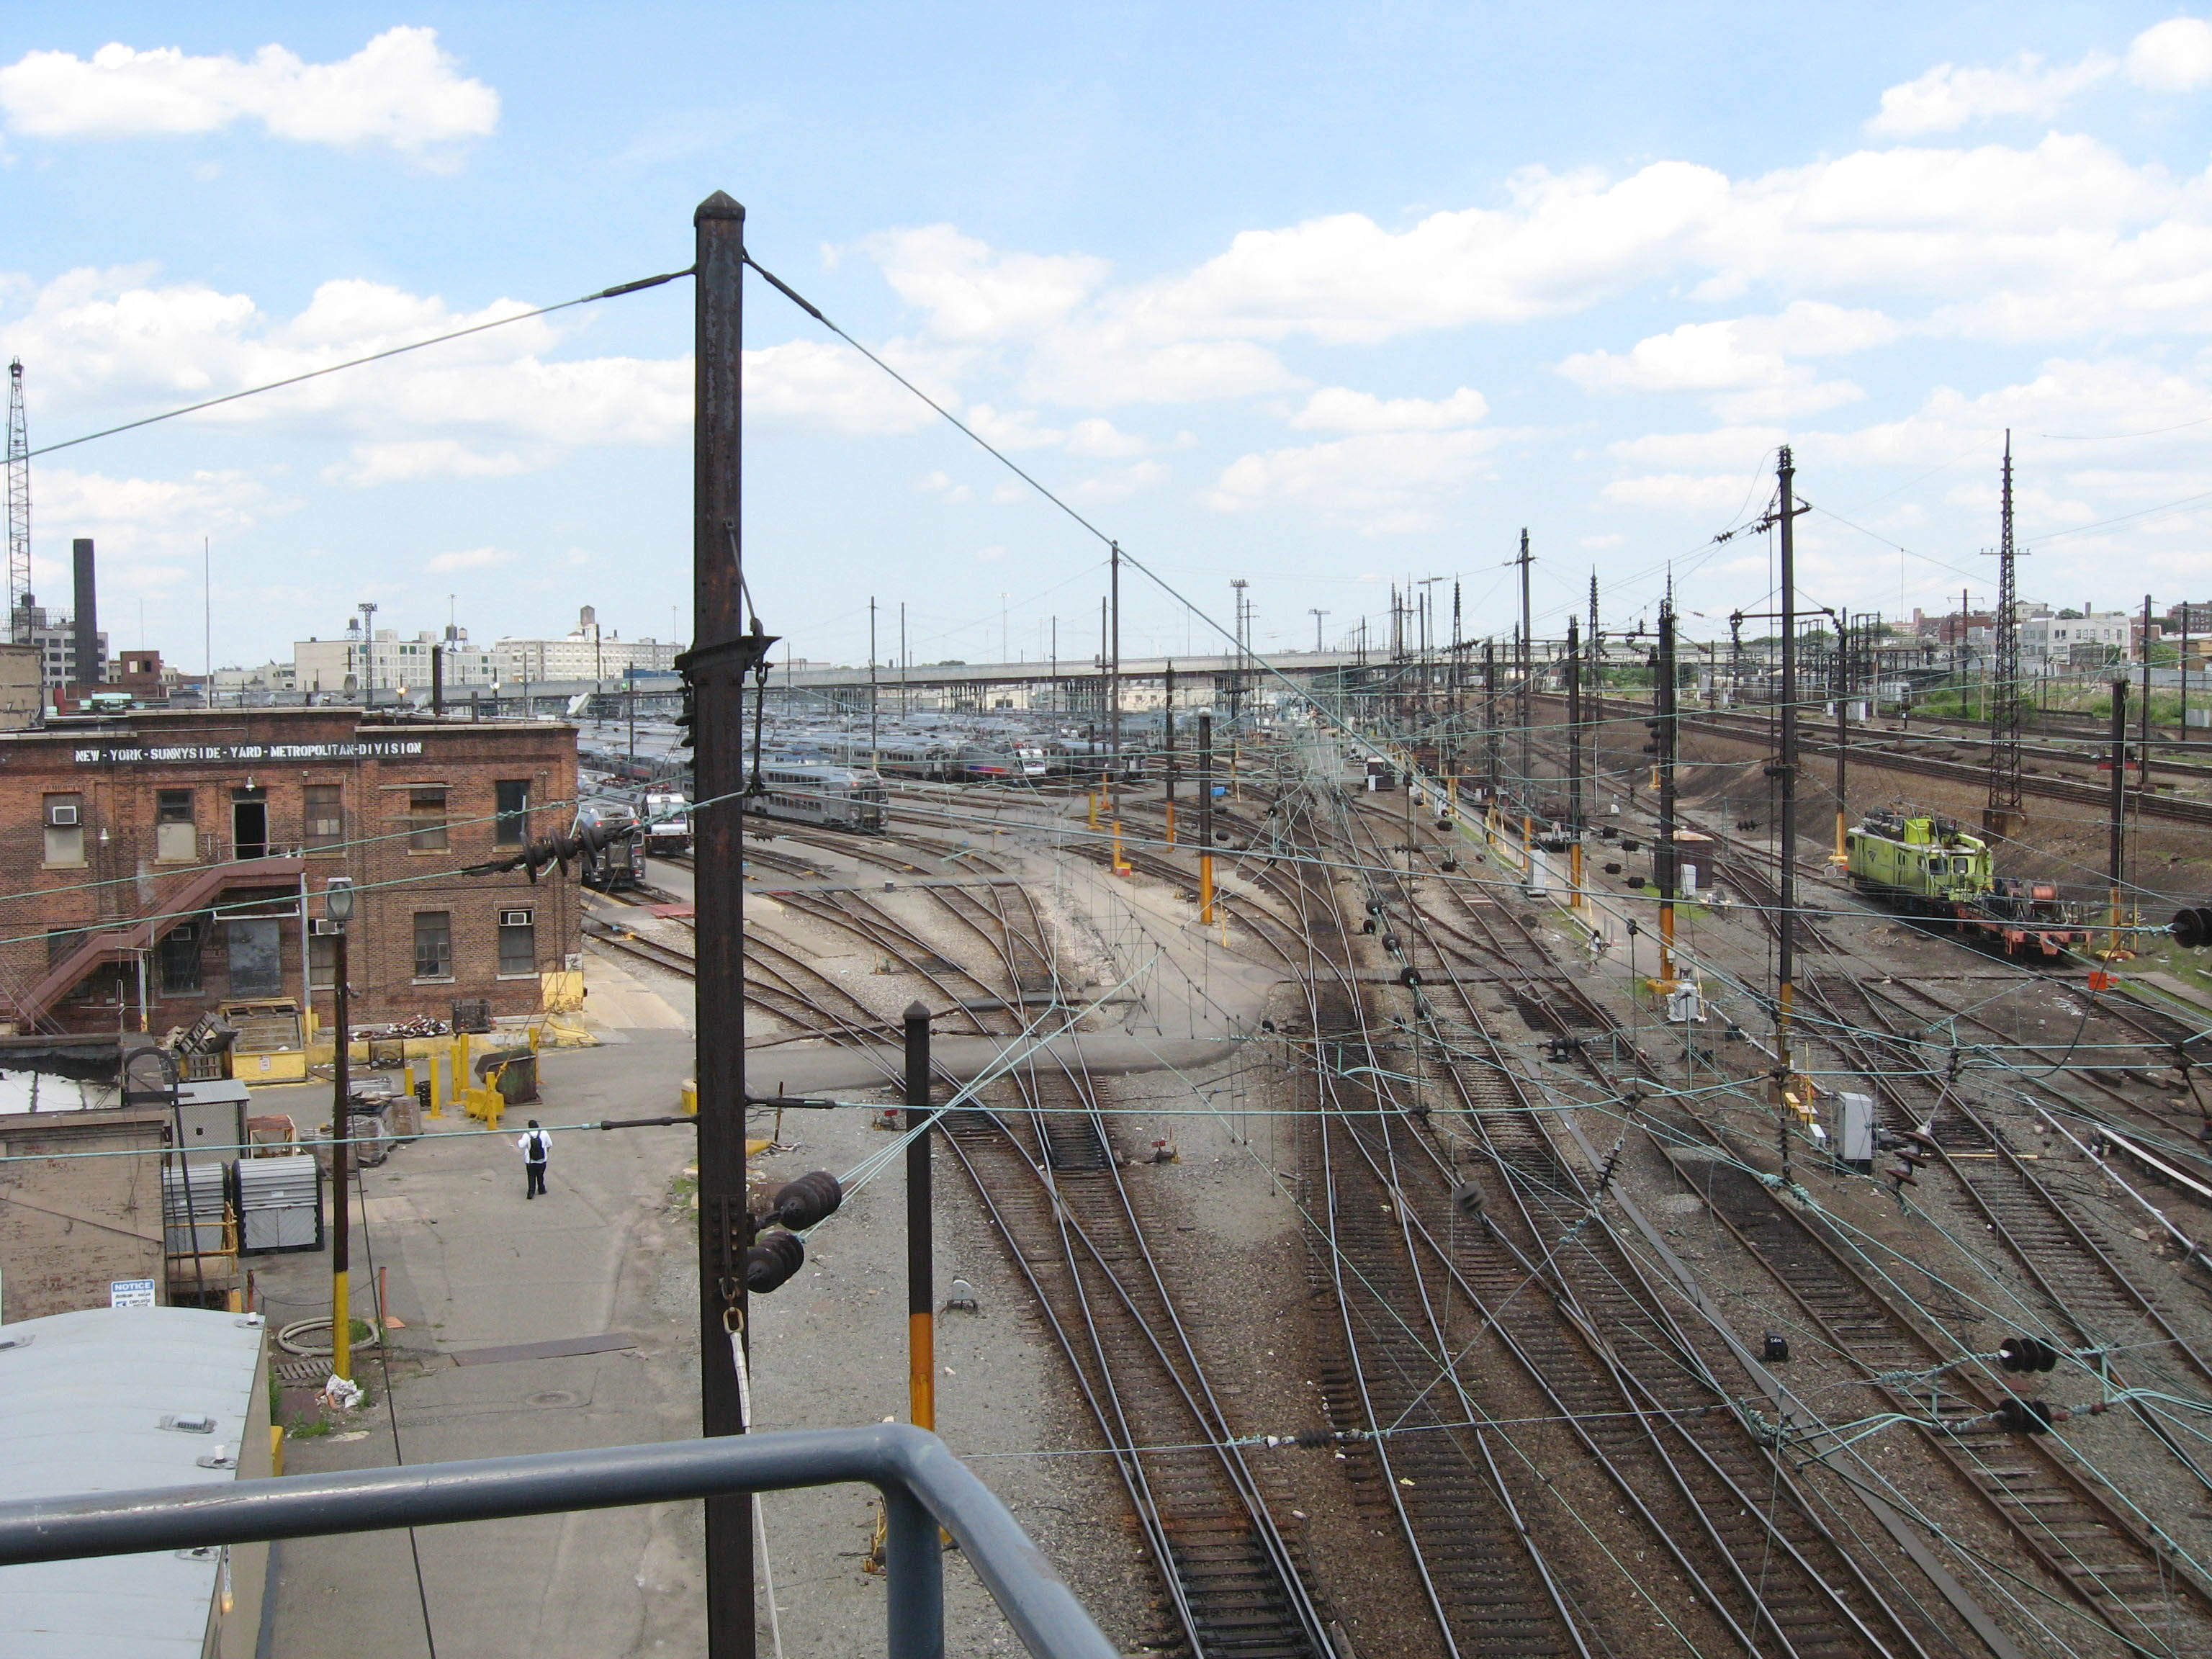 https://upload.wikimedia.org/wikipedia/commons/1/1f/Sunnyside_Yard_East_jeh.JPG